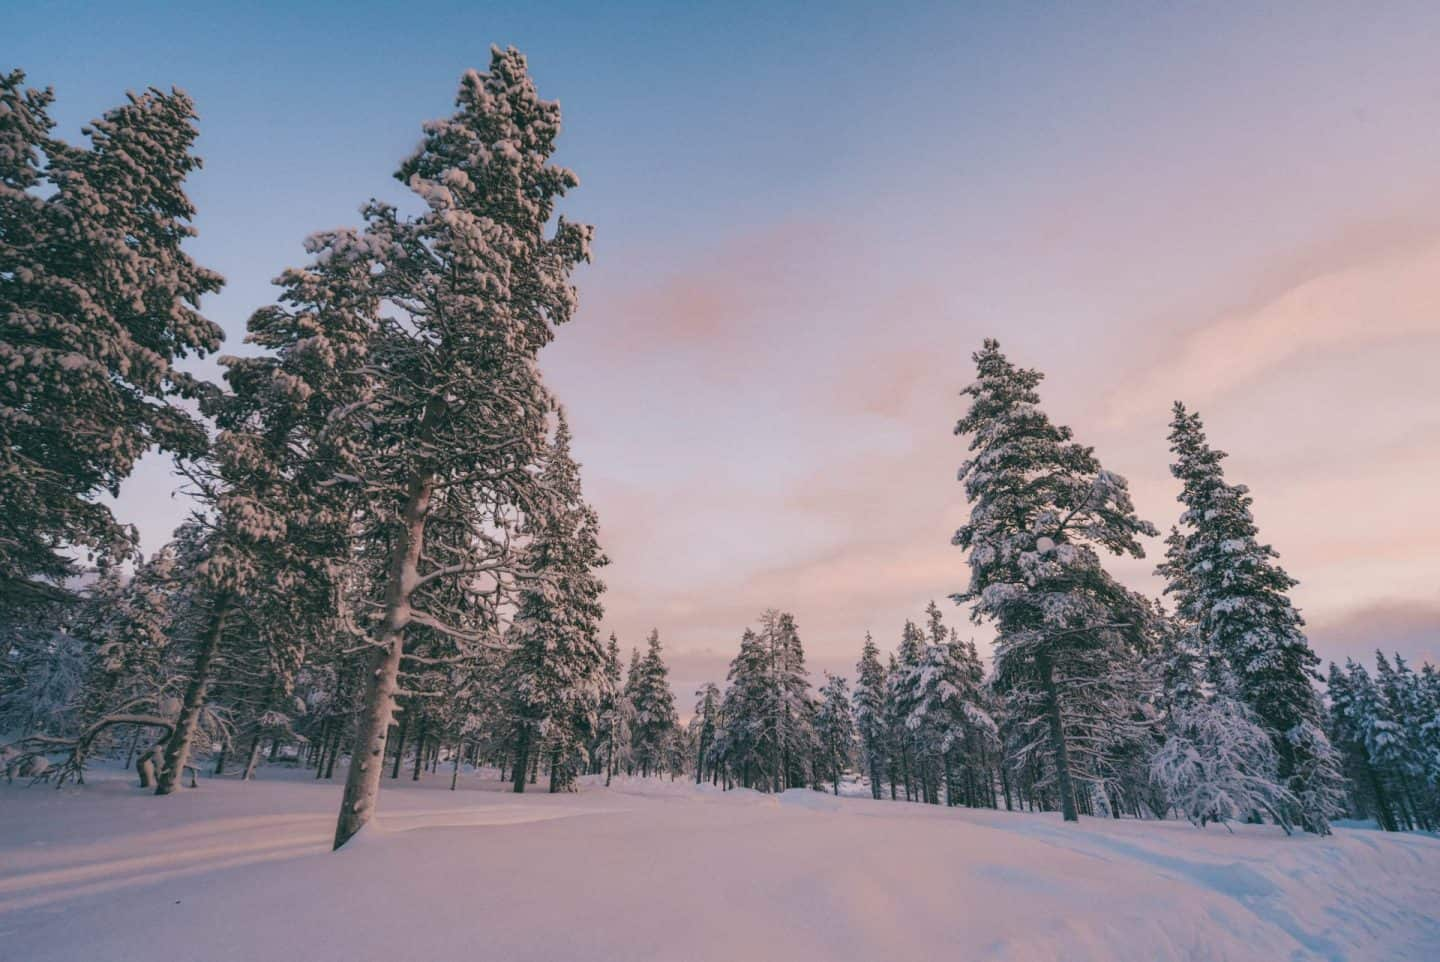 A forest of snow covered trees Finnish Lapland, Lapland destinations, Lapland Finland